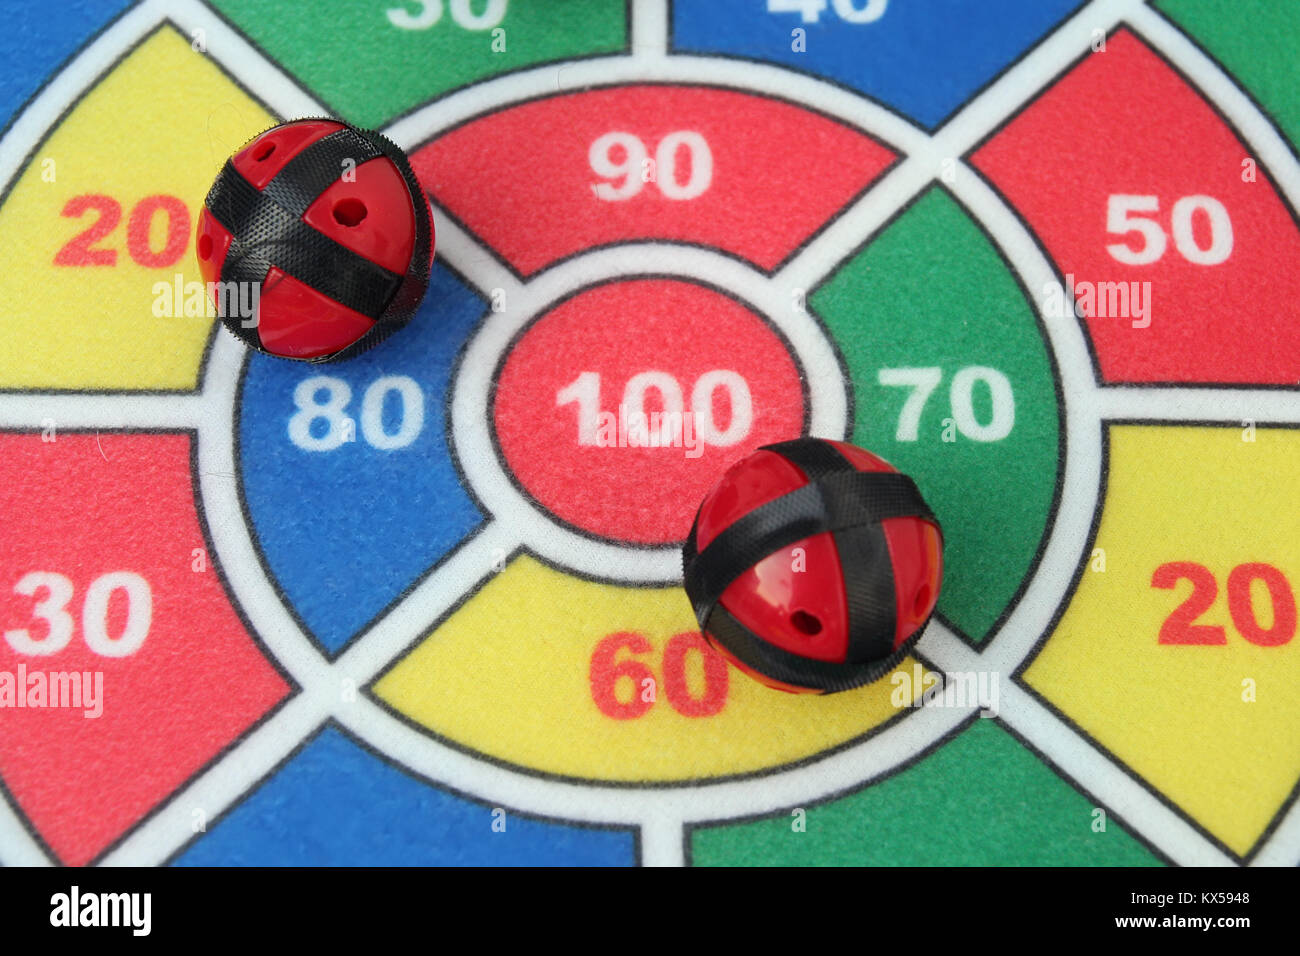 Kids Targeting Toy Kids Dart Game Stock Photo 170991304 Alamy